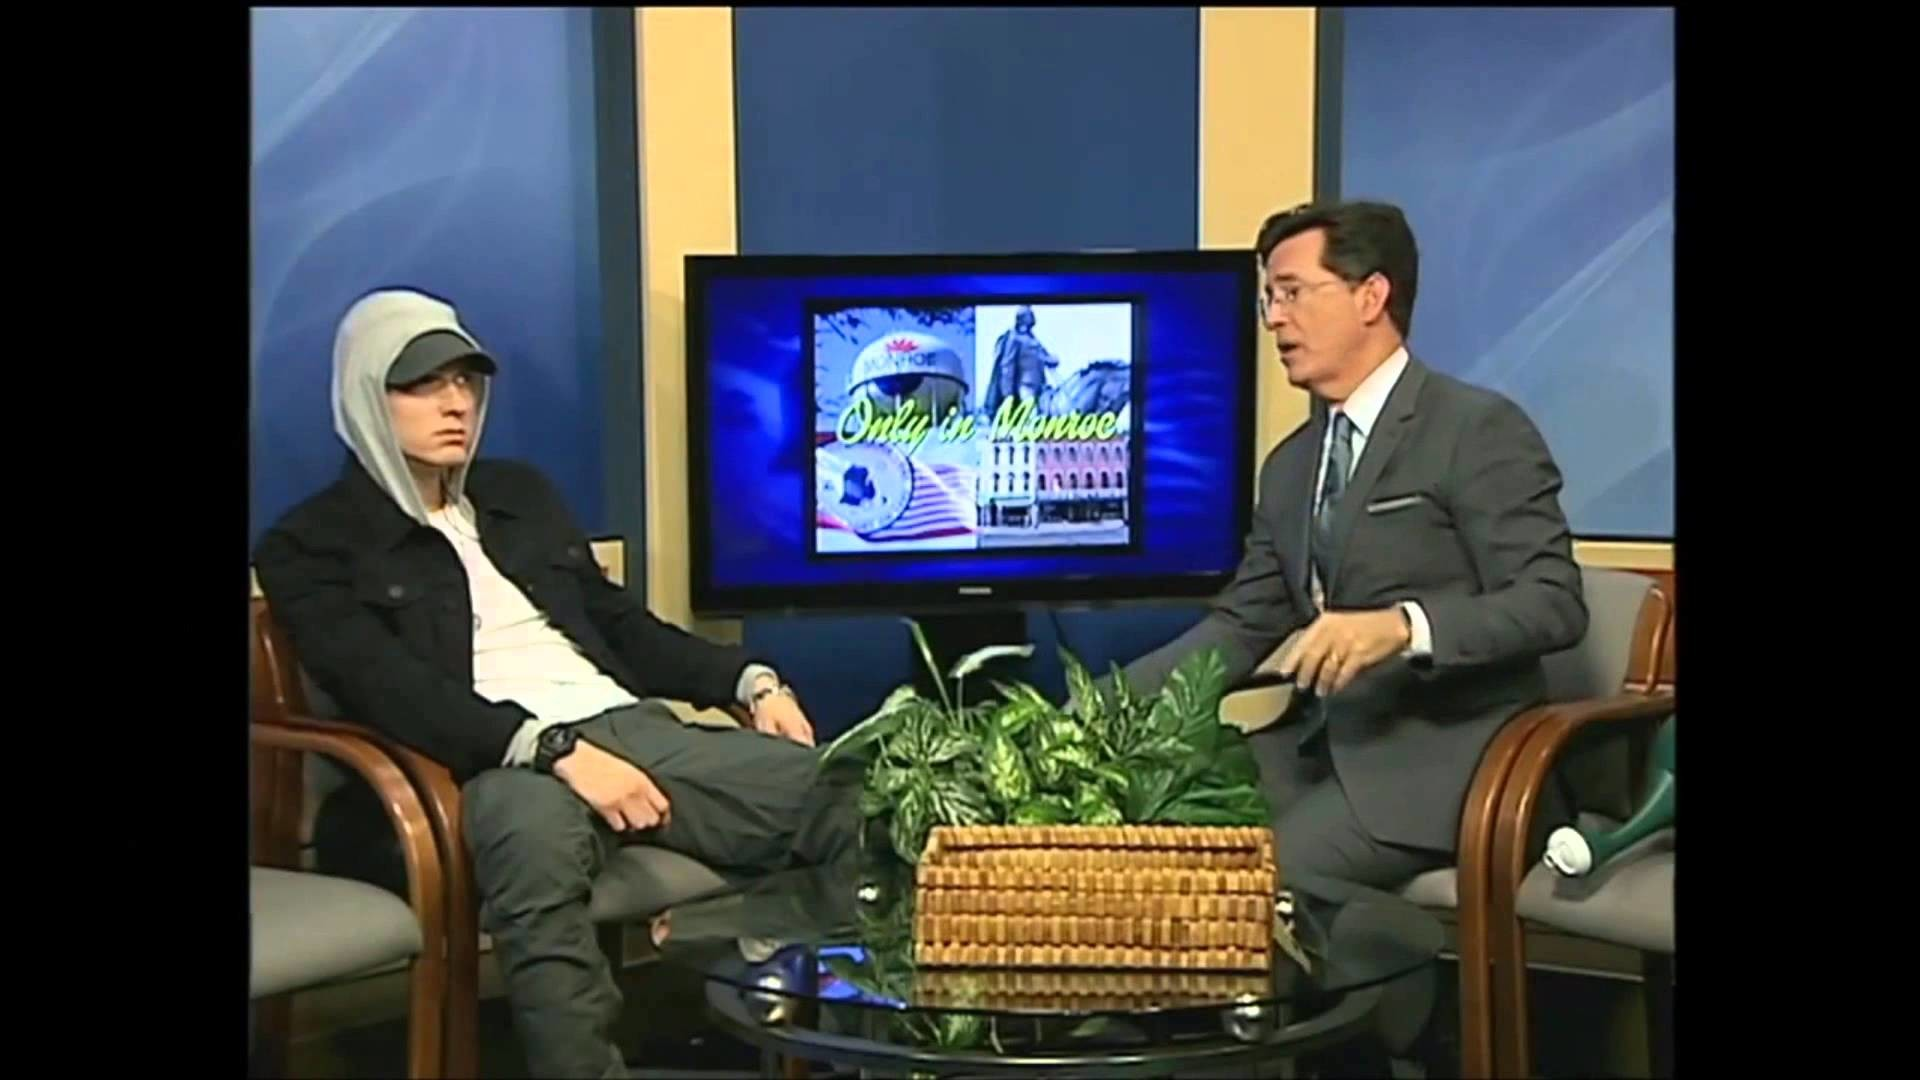 1920x1080 Detroit rapper Eminem joins Stephen Colbert for local television show spot